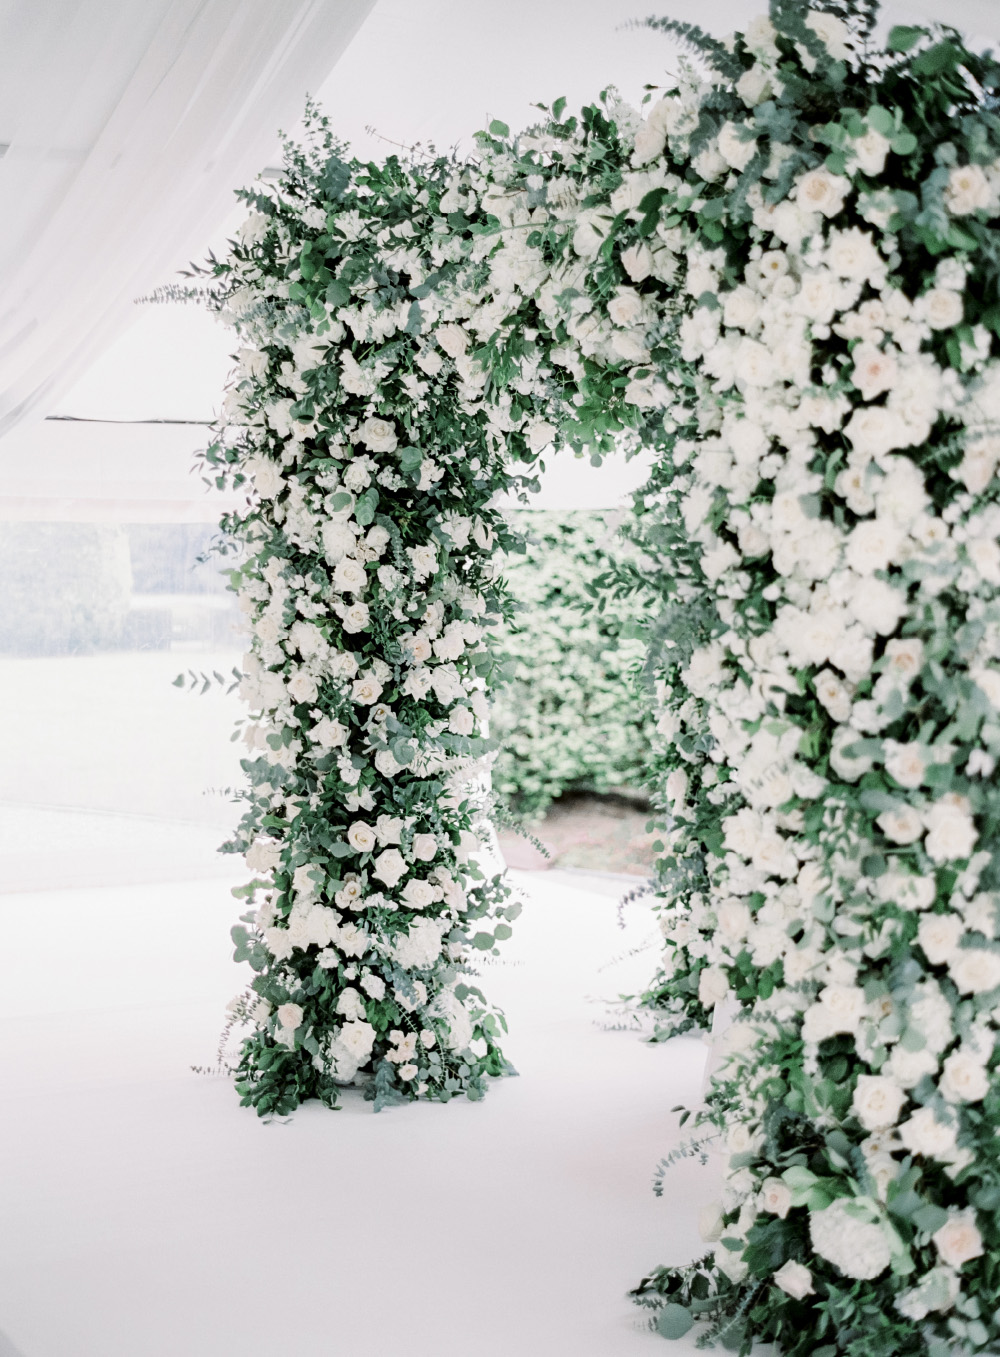 Chuppah, jewish wedding, the alpina gstaad, luxury wedding switzerland, aisle flowers, blumen baldachin, zeremoniedekoration, hochzeitsfloristik